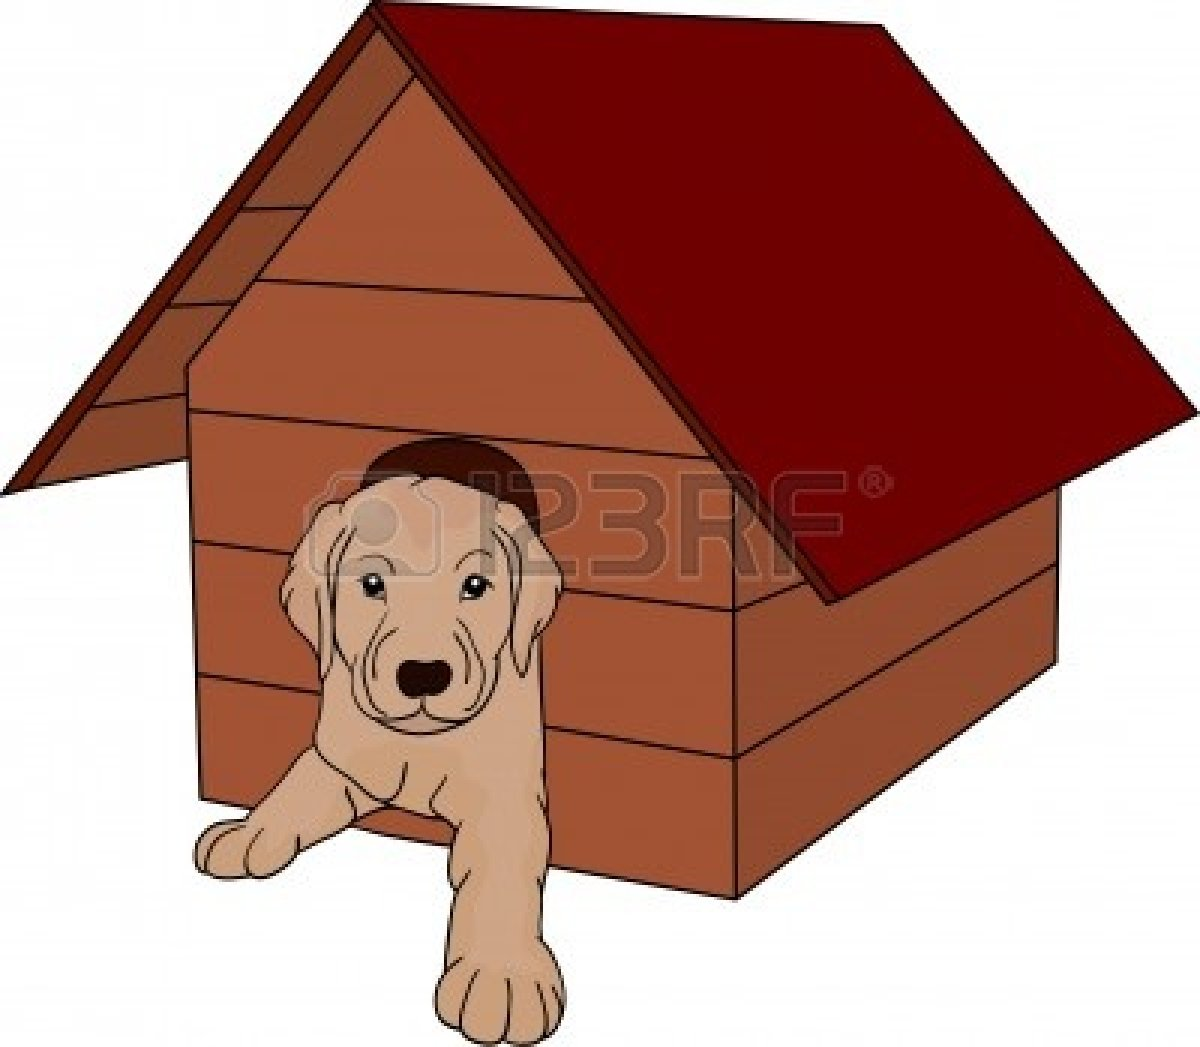 Dog kennel clipart - Clipground